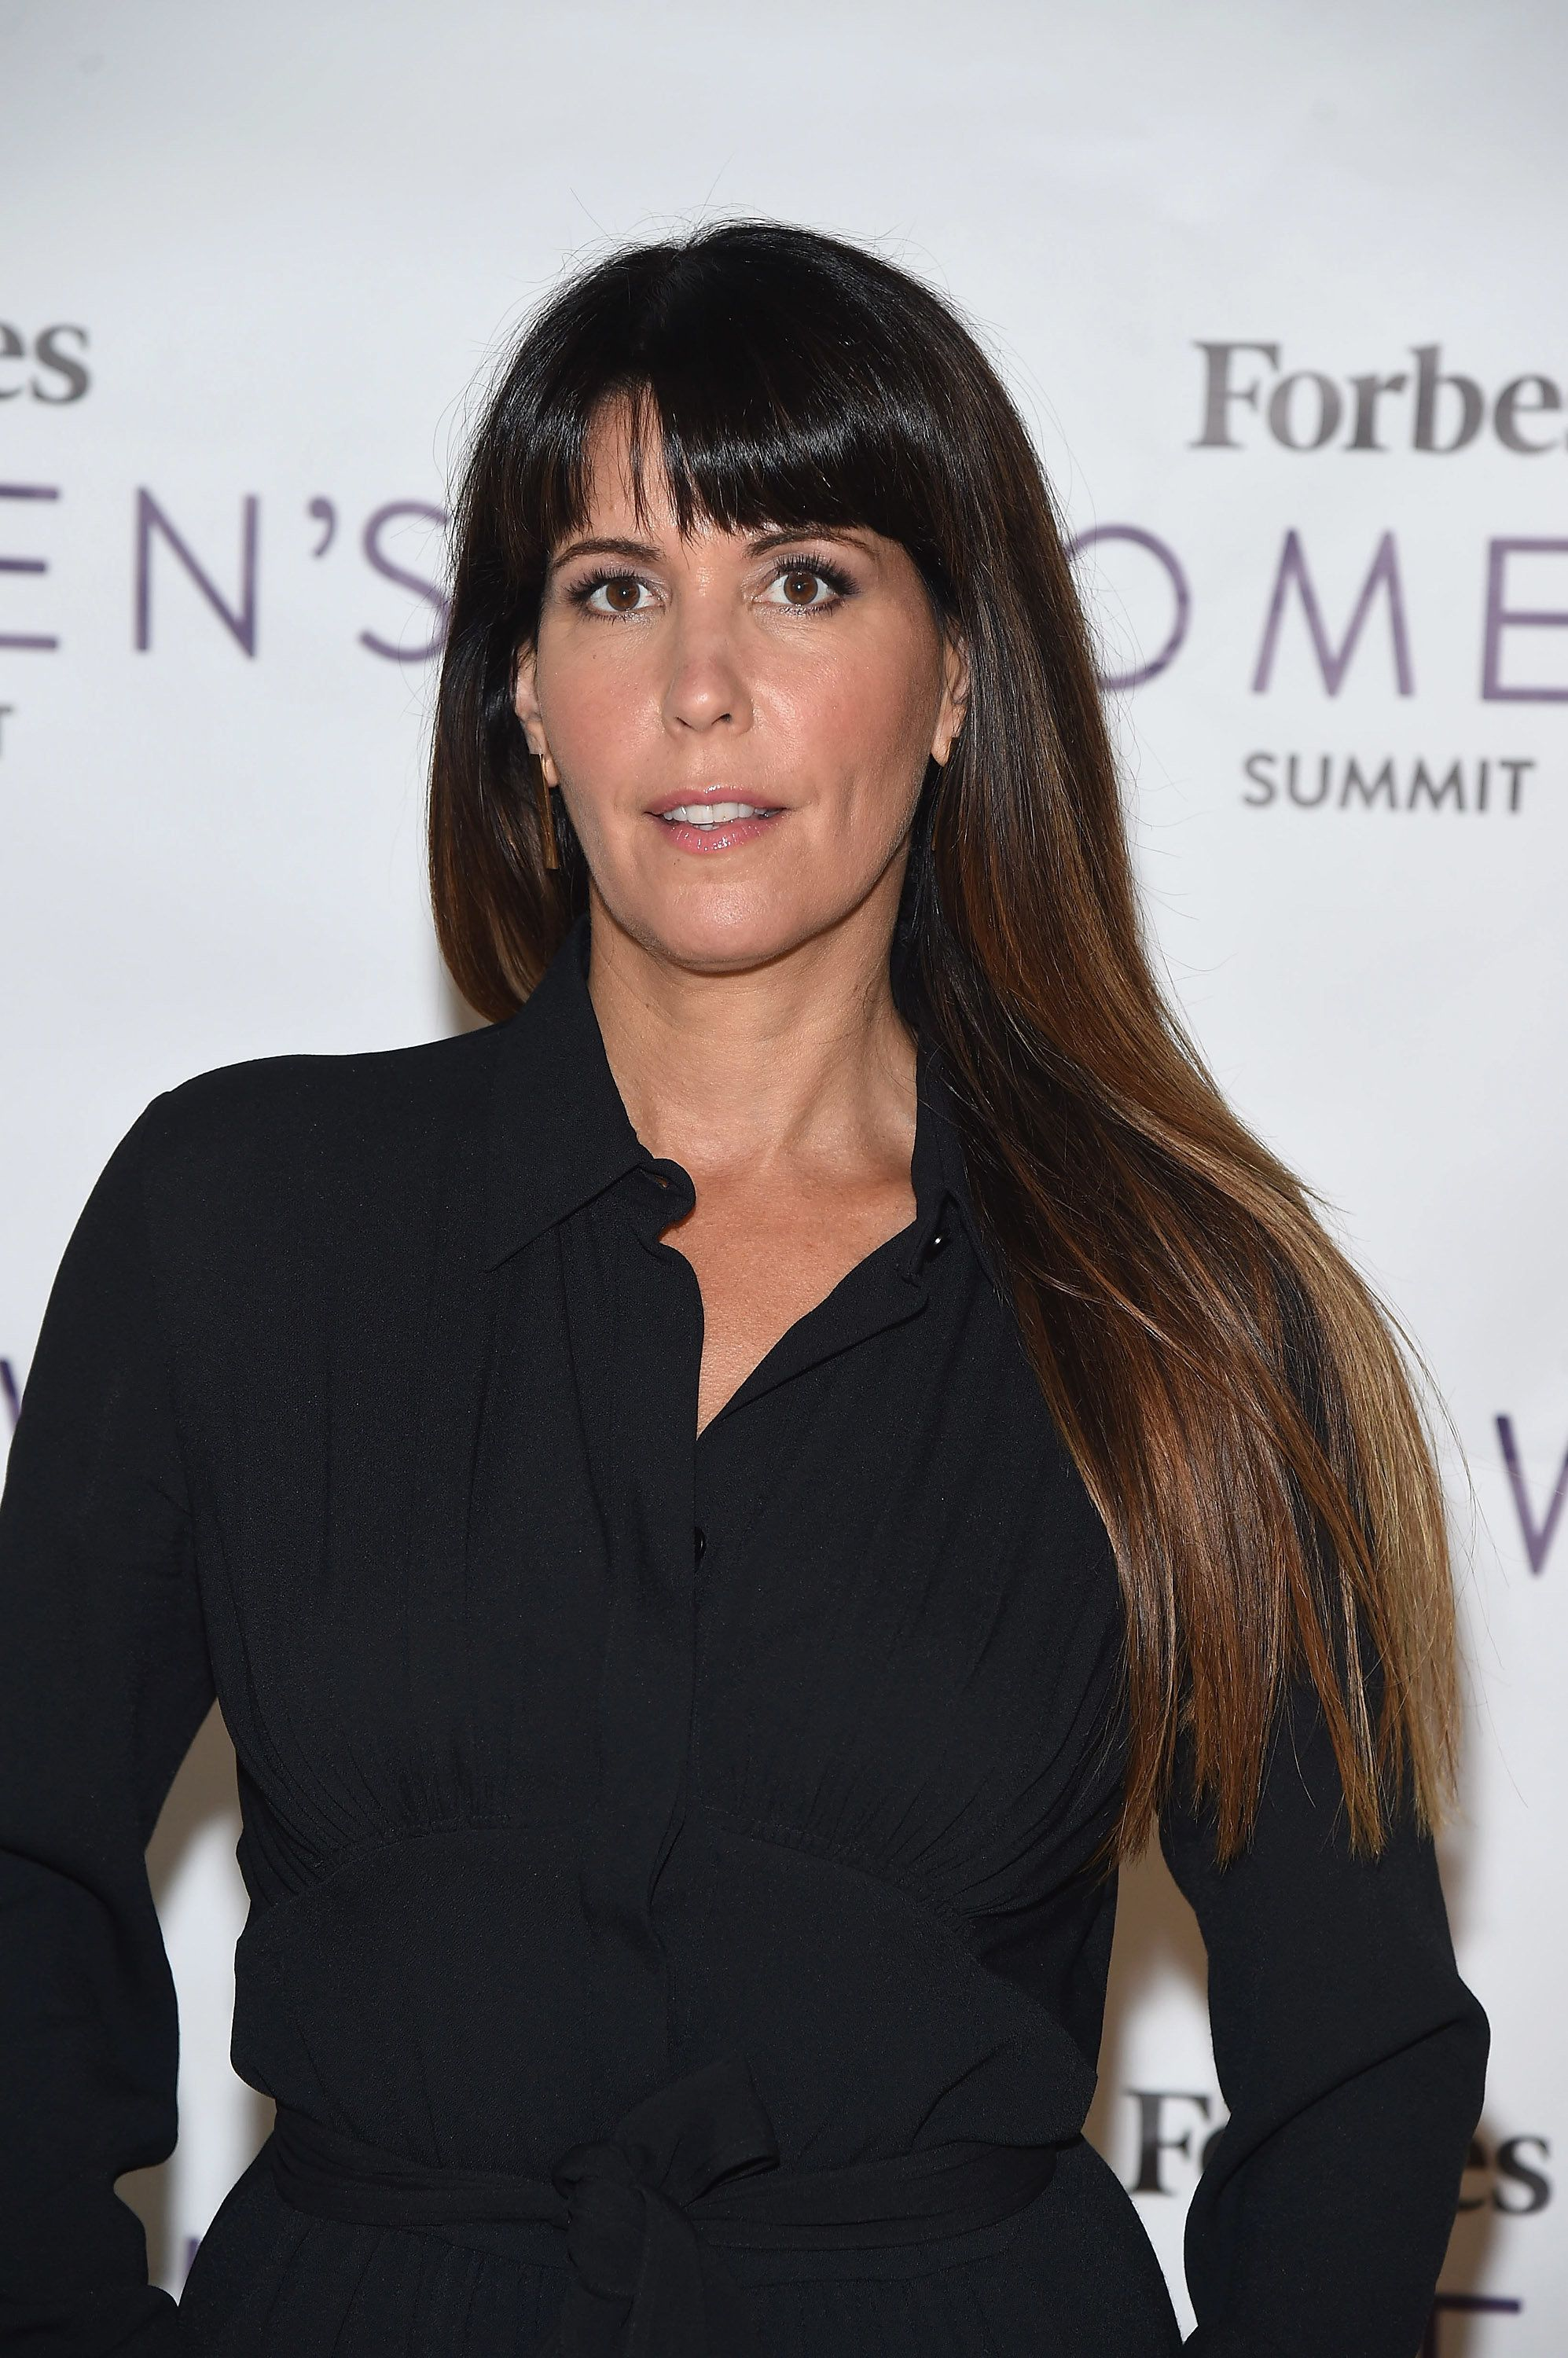 NEW YORK, NY - JUNE 13:  Filmmaker and screenwriter Patty Jenkins attends the 2017 Forbes Women's Summit at Spring Studios on June 13, 2017 in New York City.  (Photo by Gary Gershoff/WireImage)